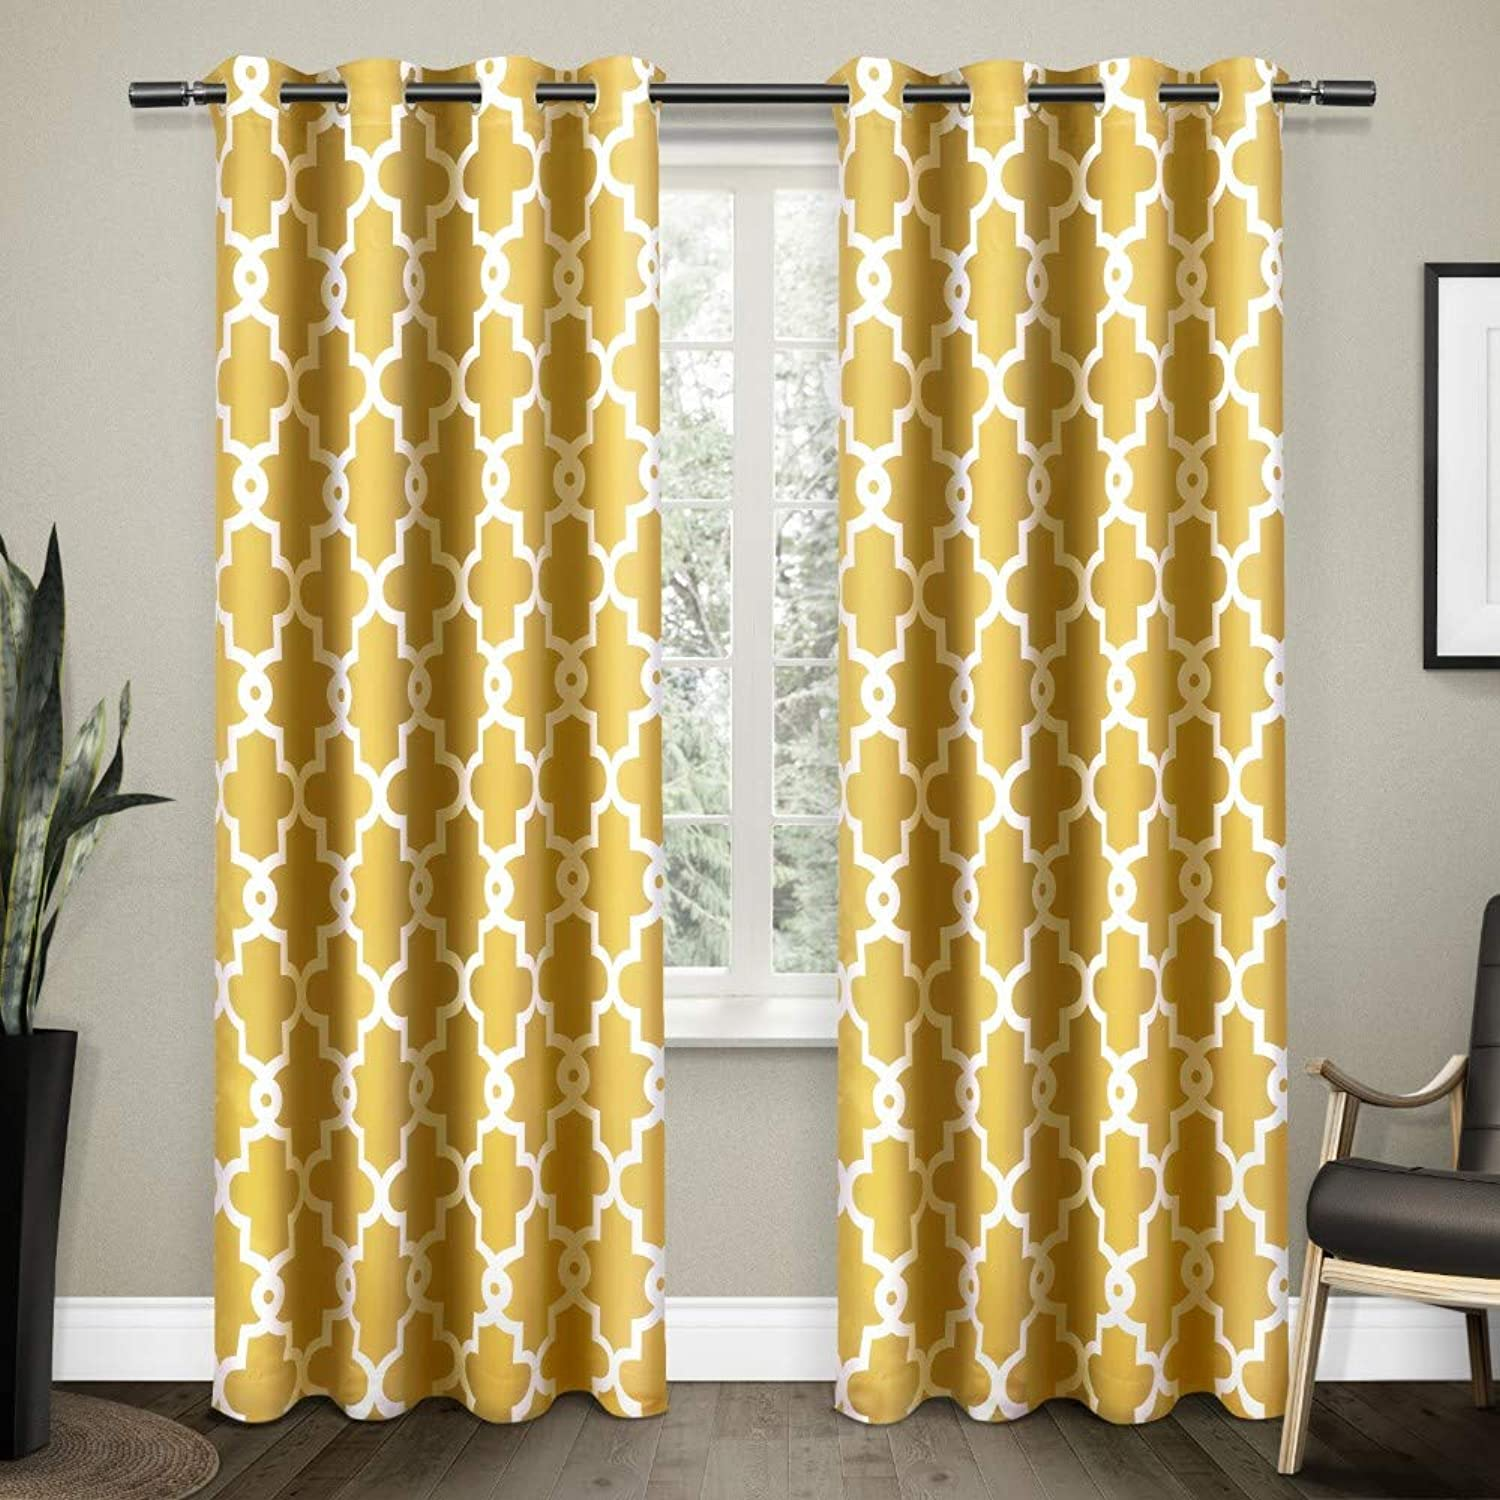 Exclusive Home Curtains Ironwork Sateen Woven Blackout Window Curtain Panel Pair with Grommet Top, 52x108, Sundress Yellow, 2 Piece